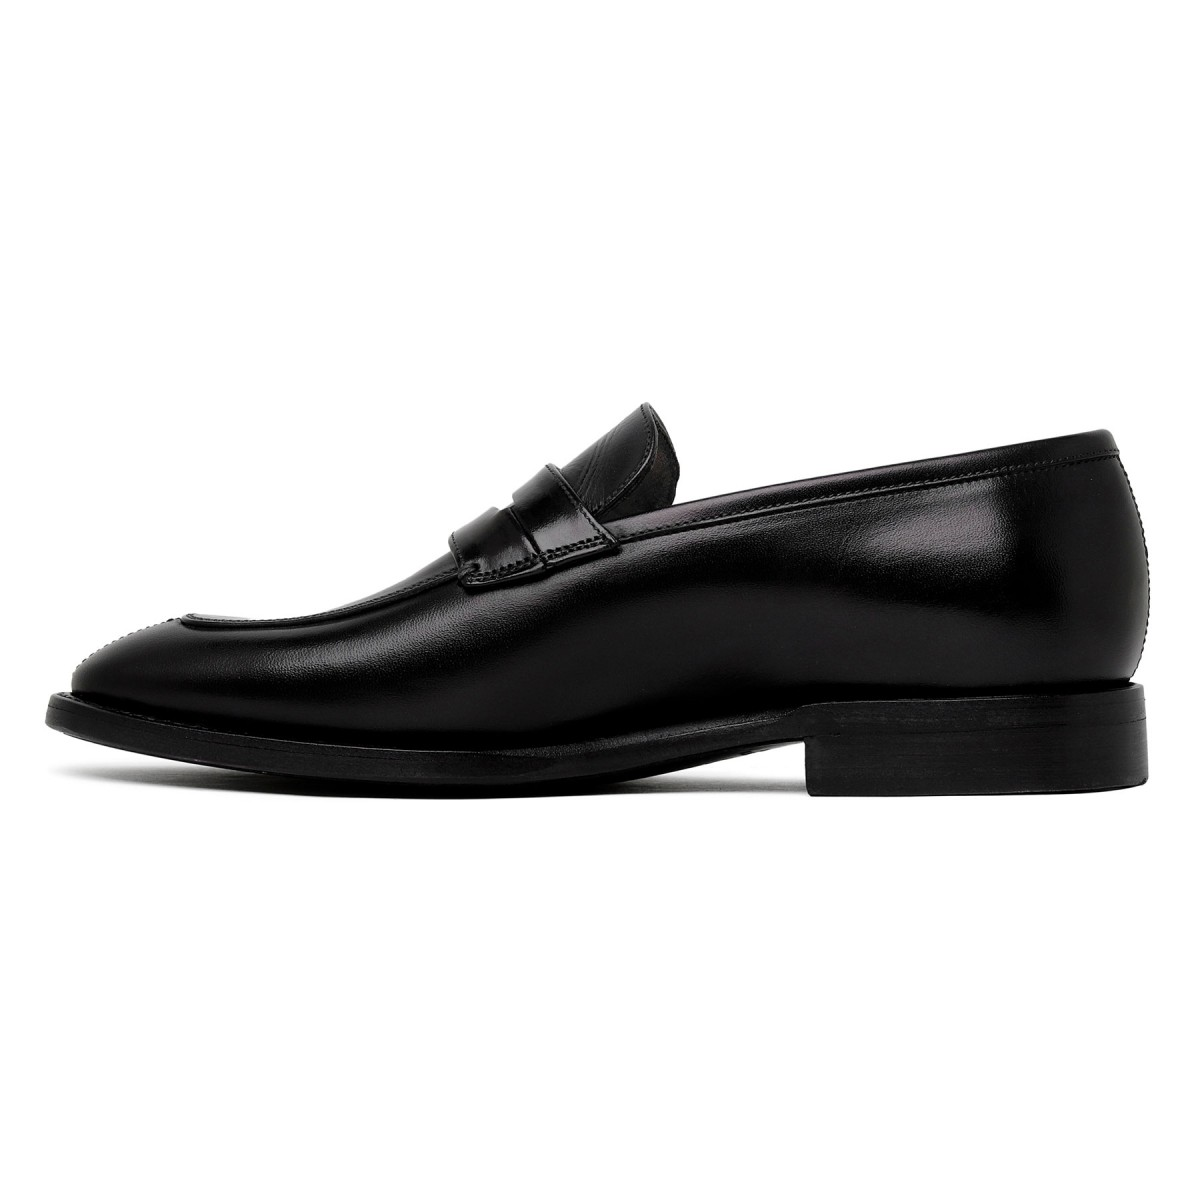 Marsiglia black leather loafers